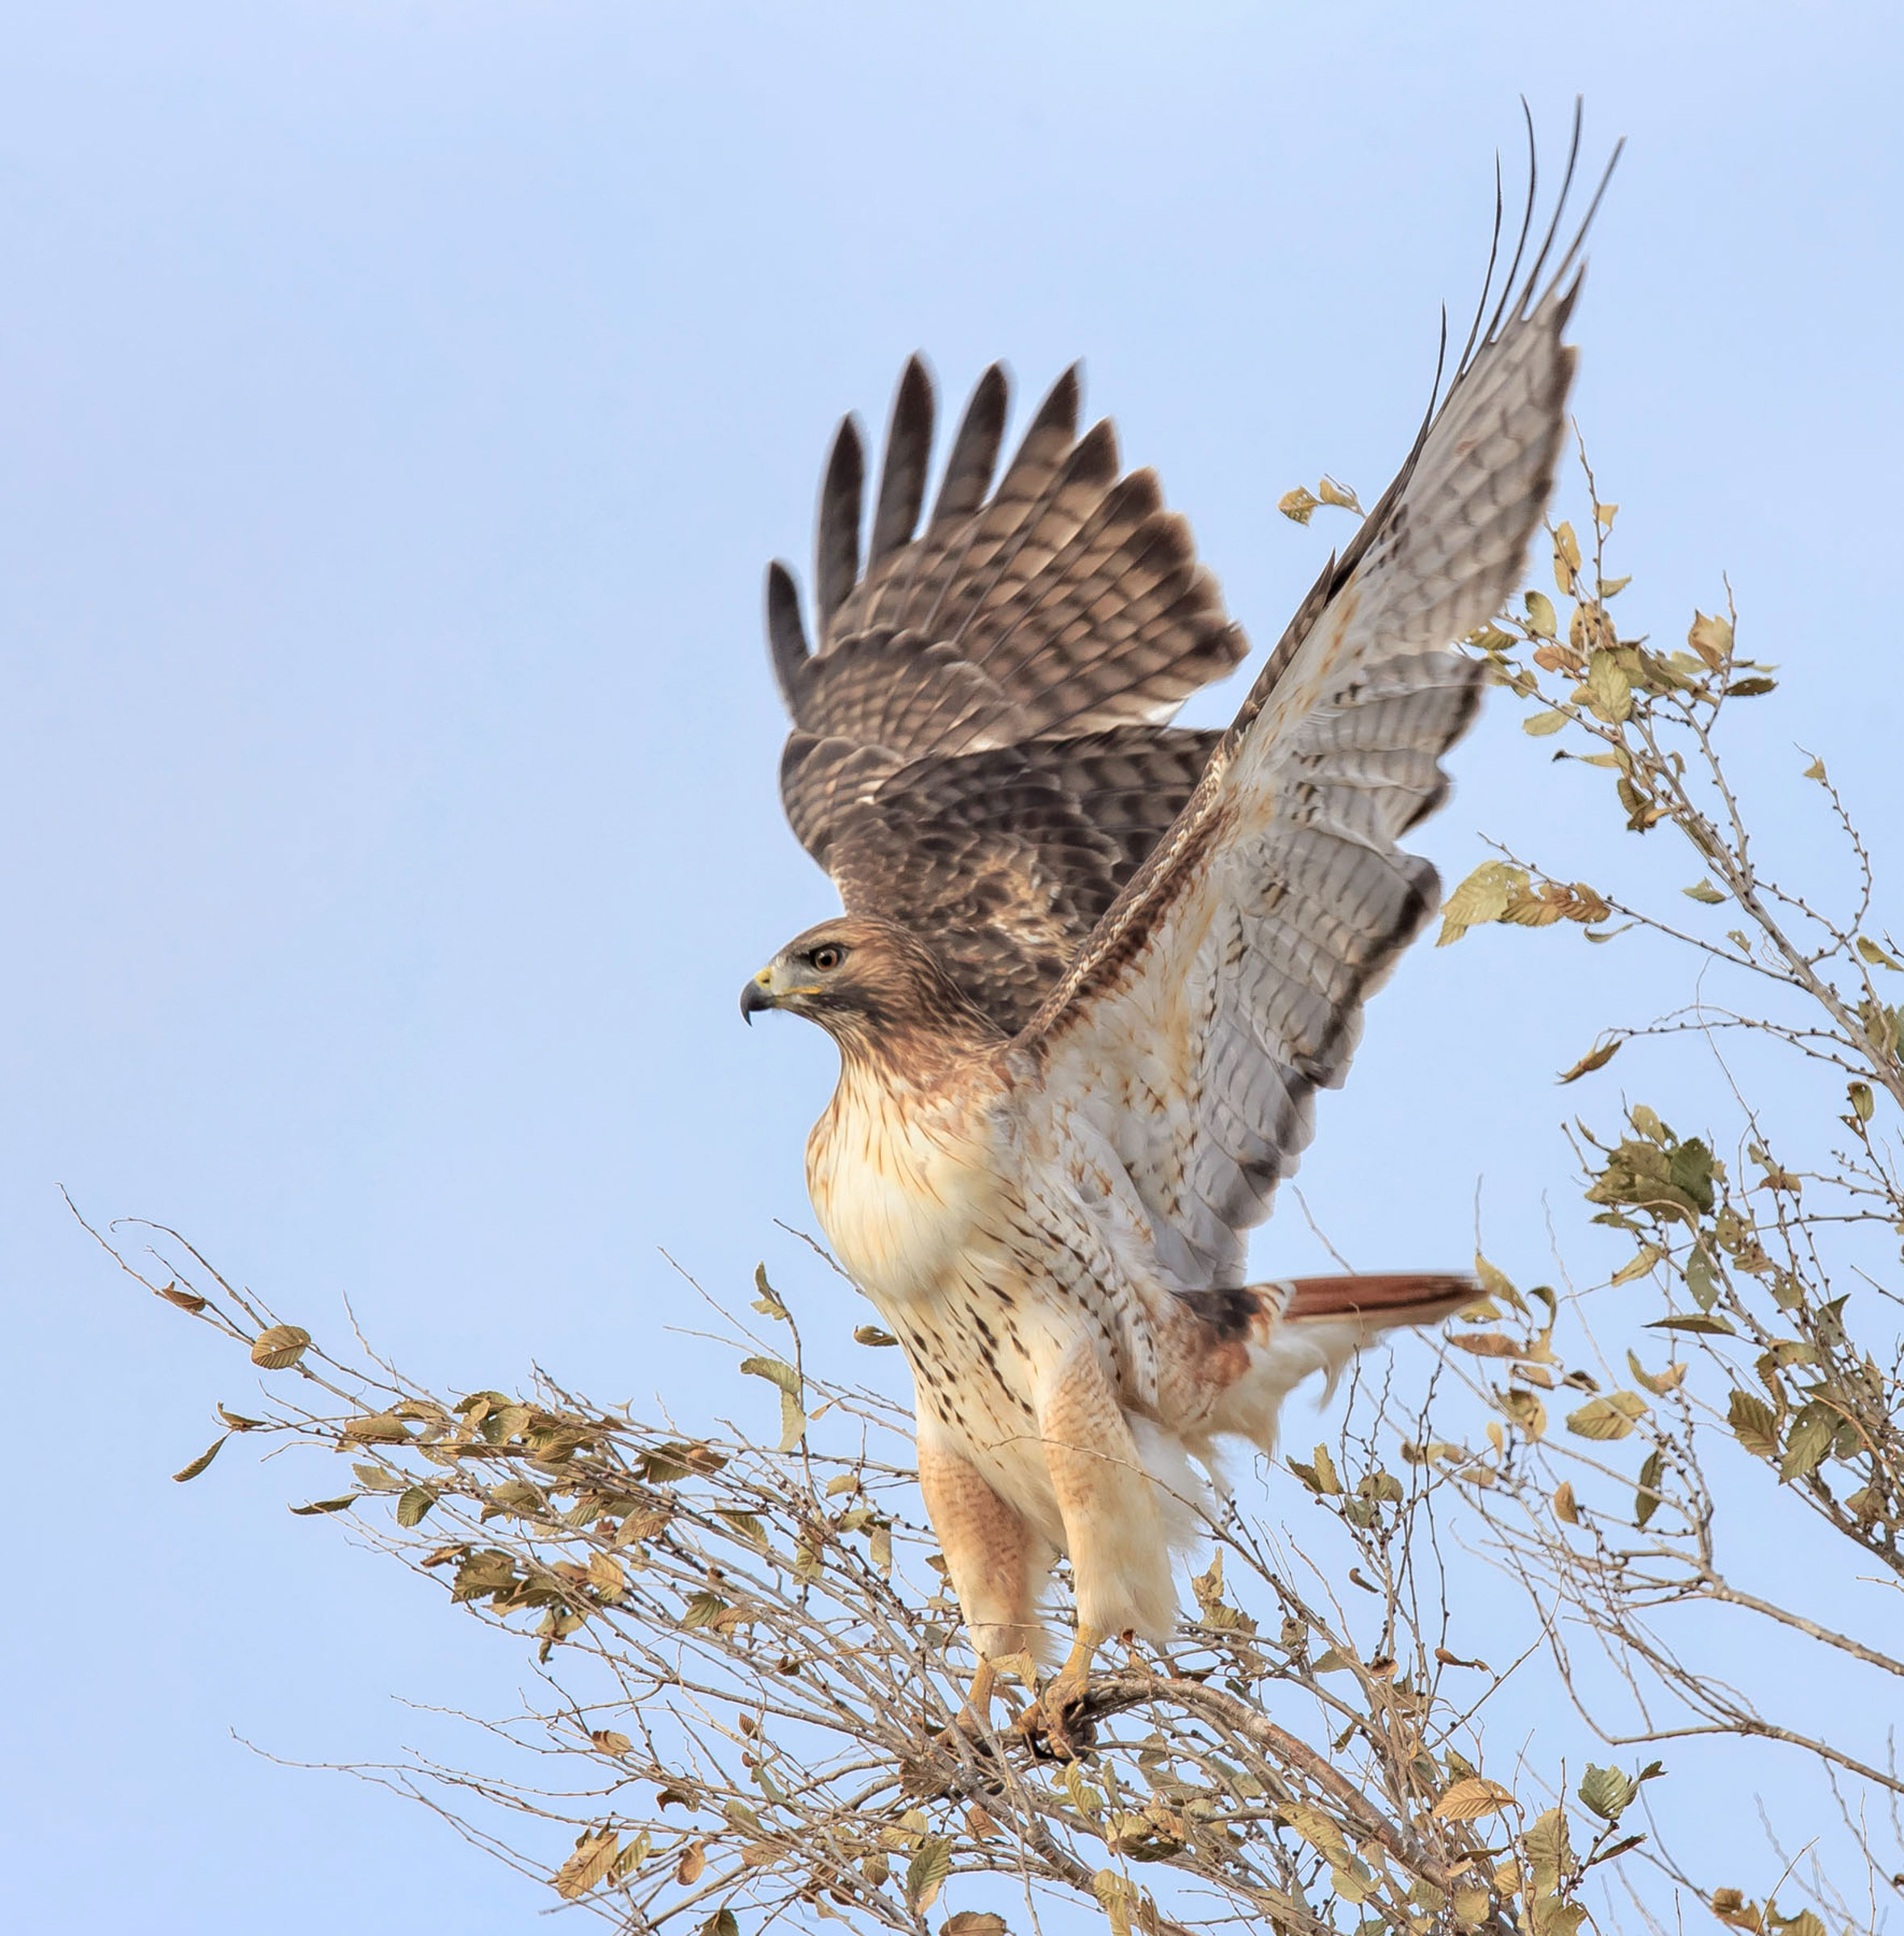 Red-tailed Hawk. Wink Gaines/Audubon Photography Awards